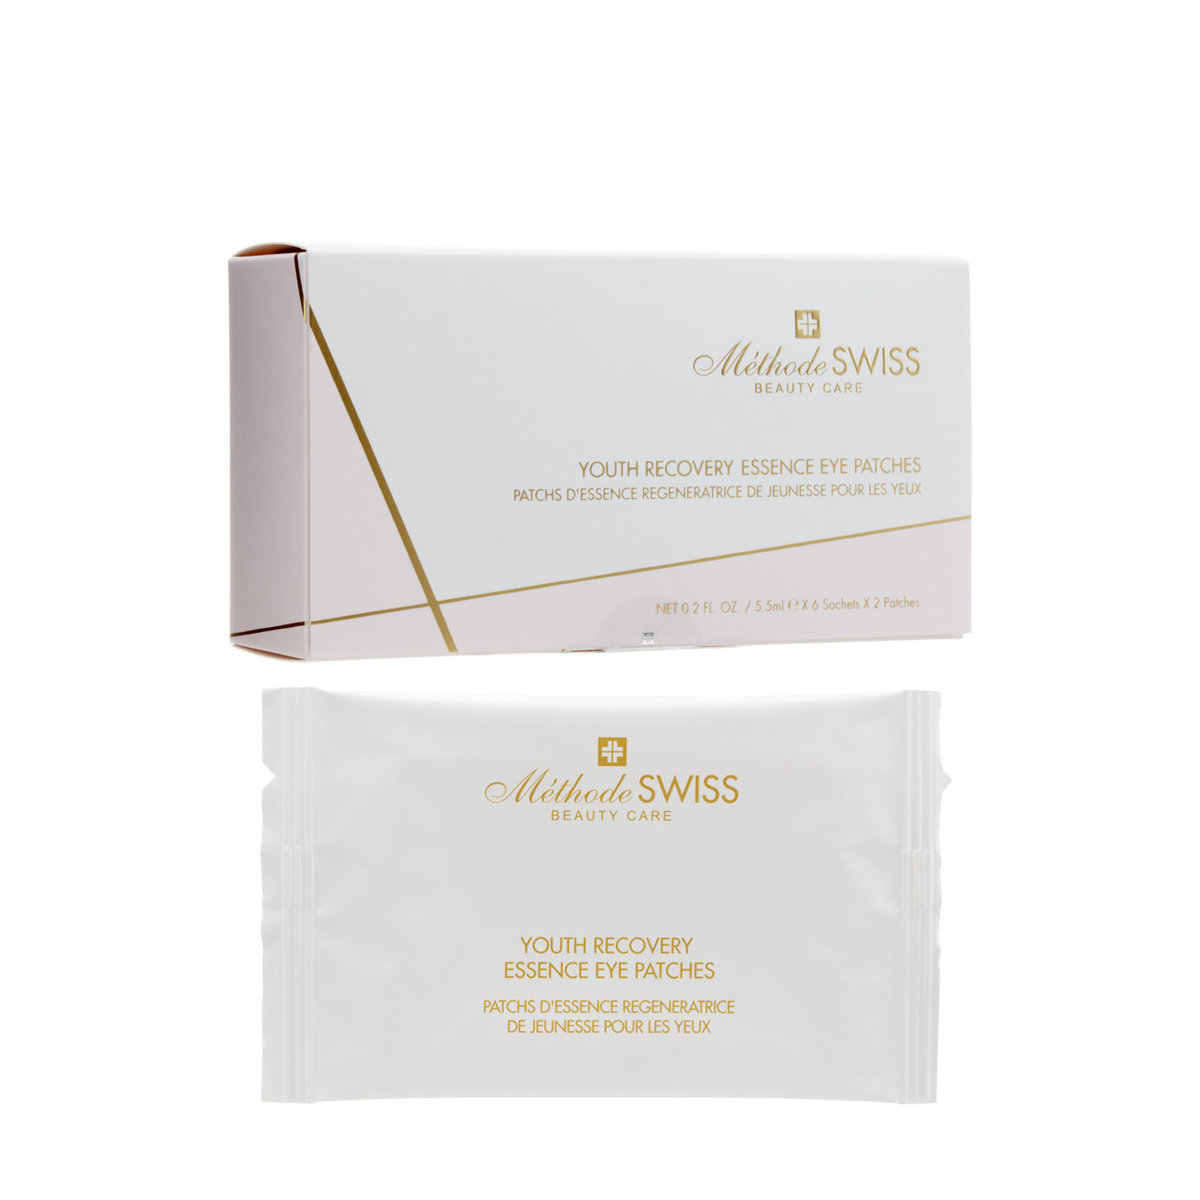 Youth Recovery Essence Eye Patches